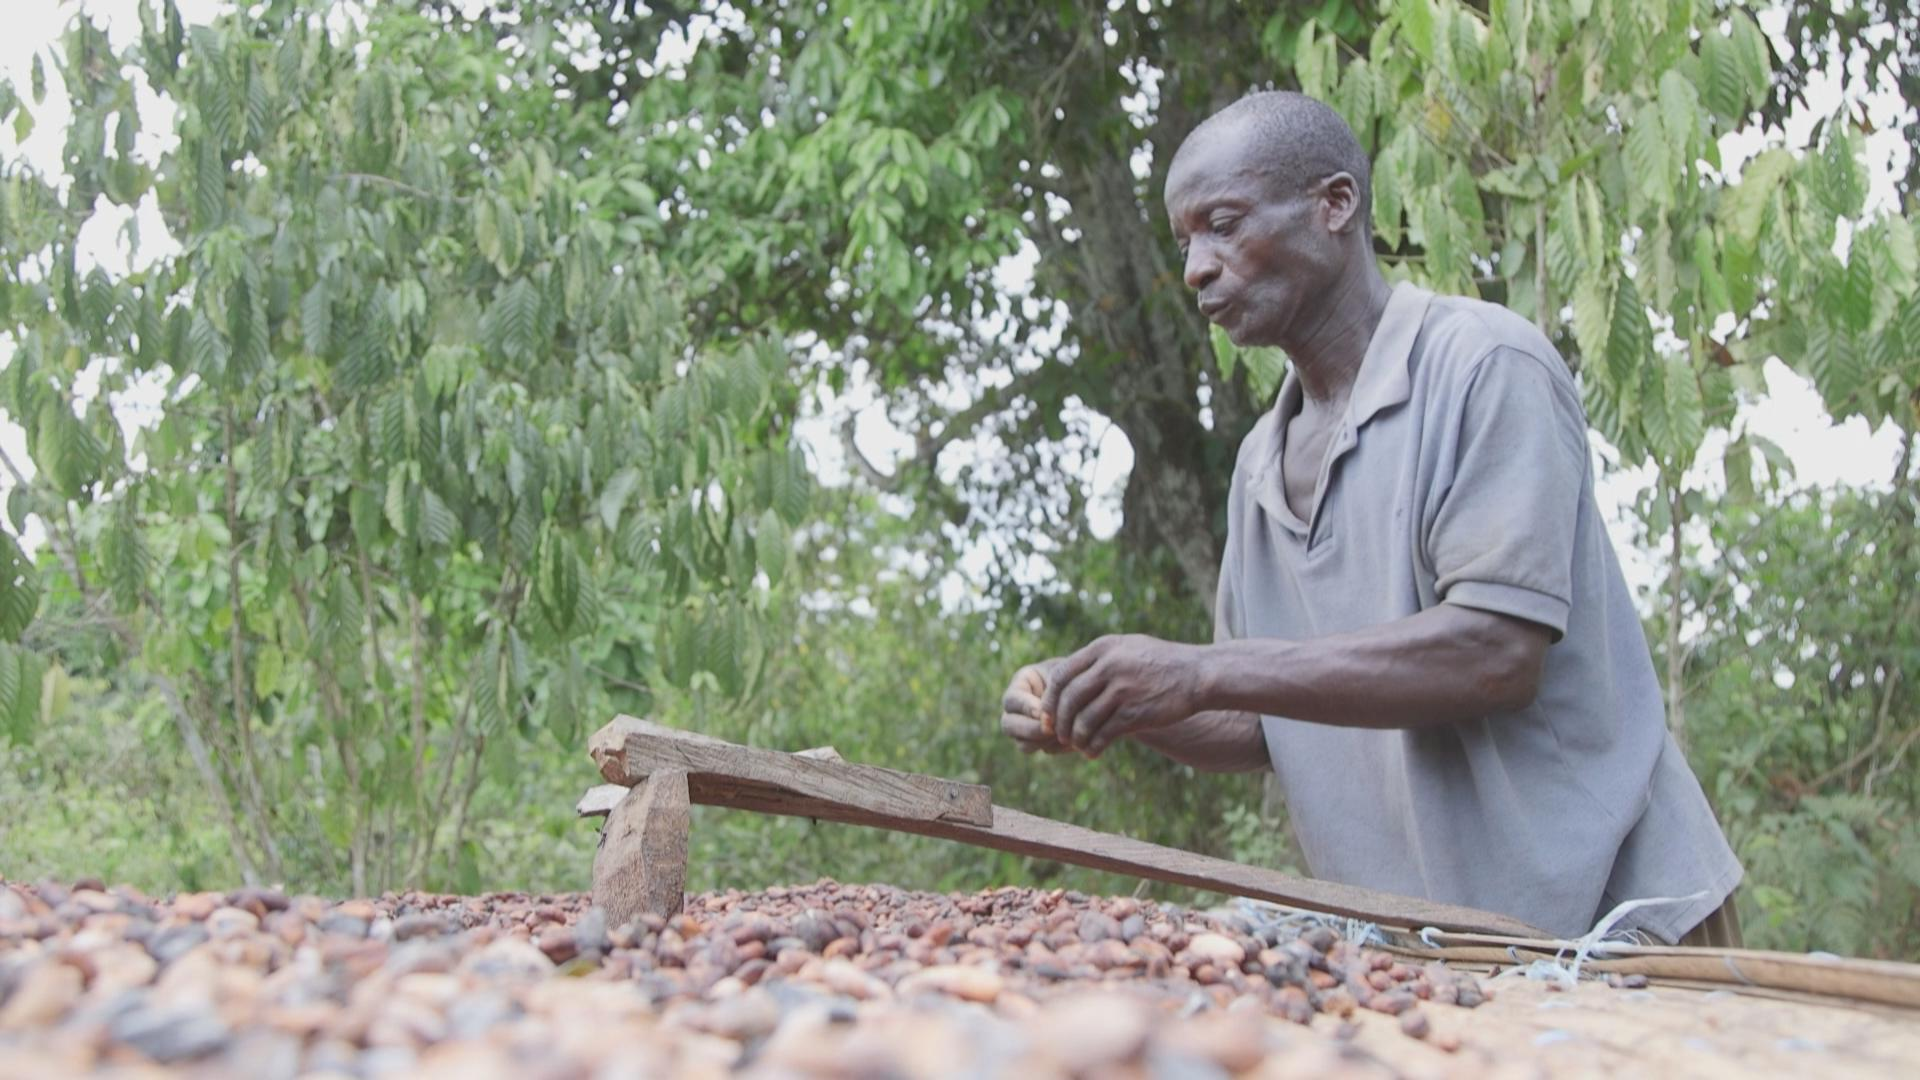 Thomas sorting out cacao beans.